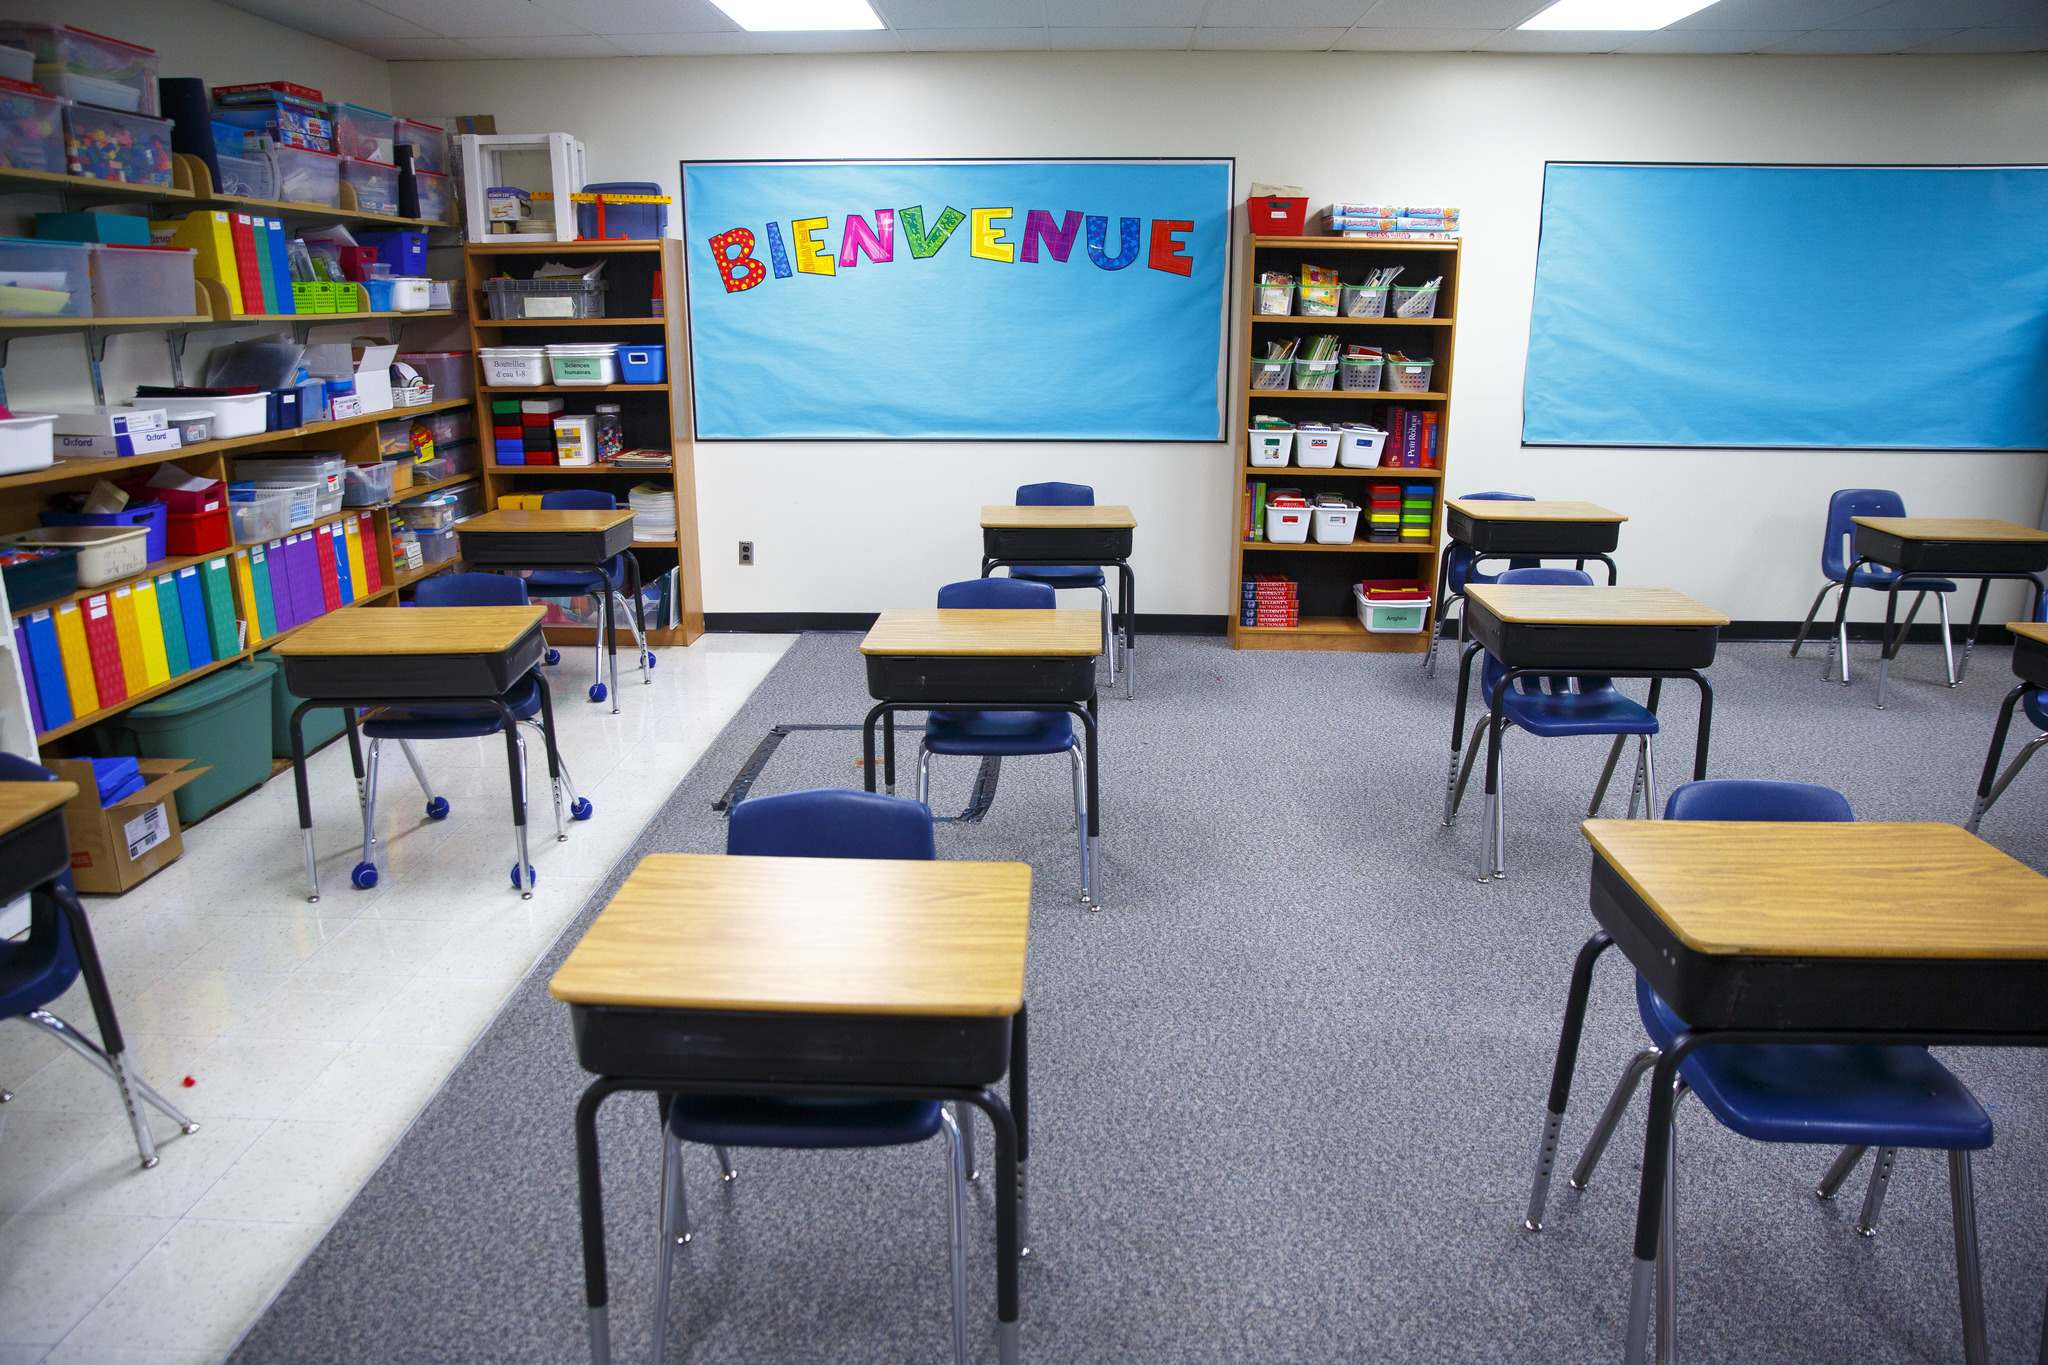 Last year, some families received courtesy notices their child was in a classroom or cohort in which a positive case was identified, but that practice is not required. (Mike Deal / Winnipeg Free Press files)